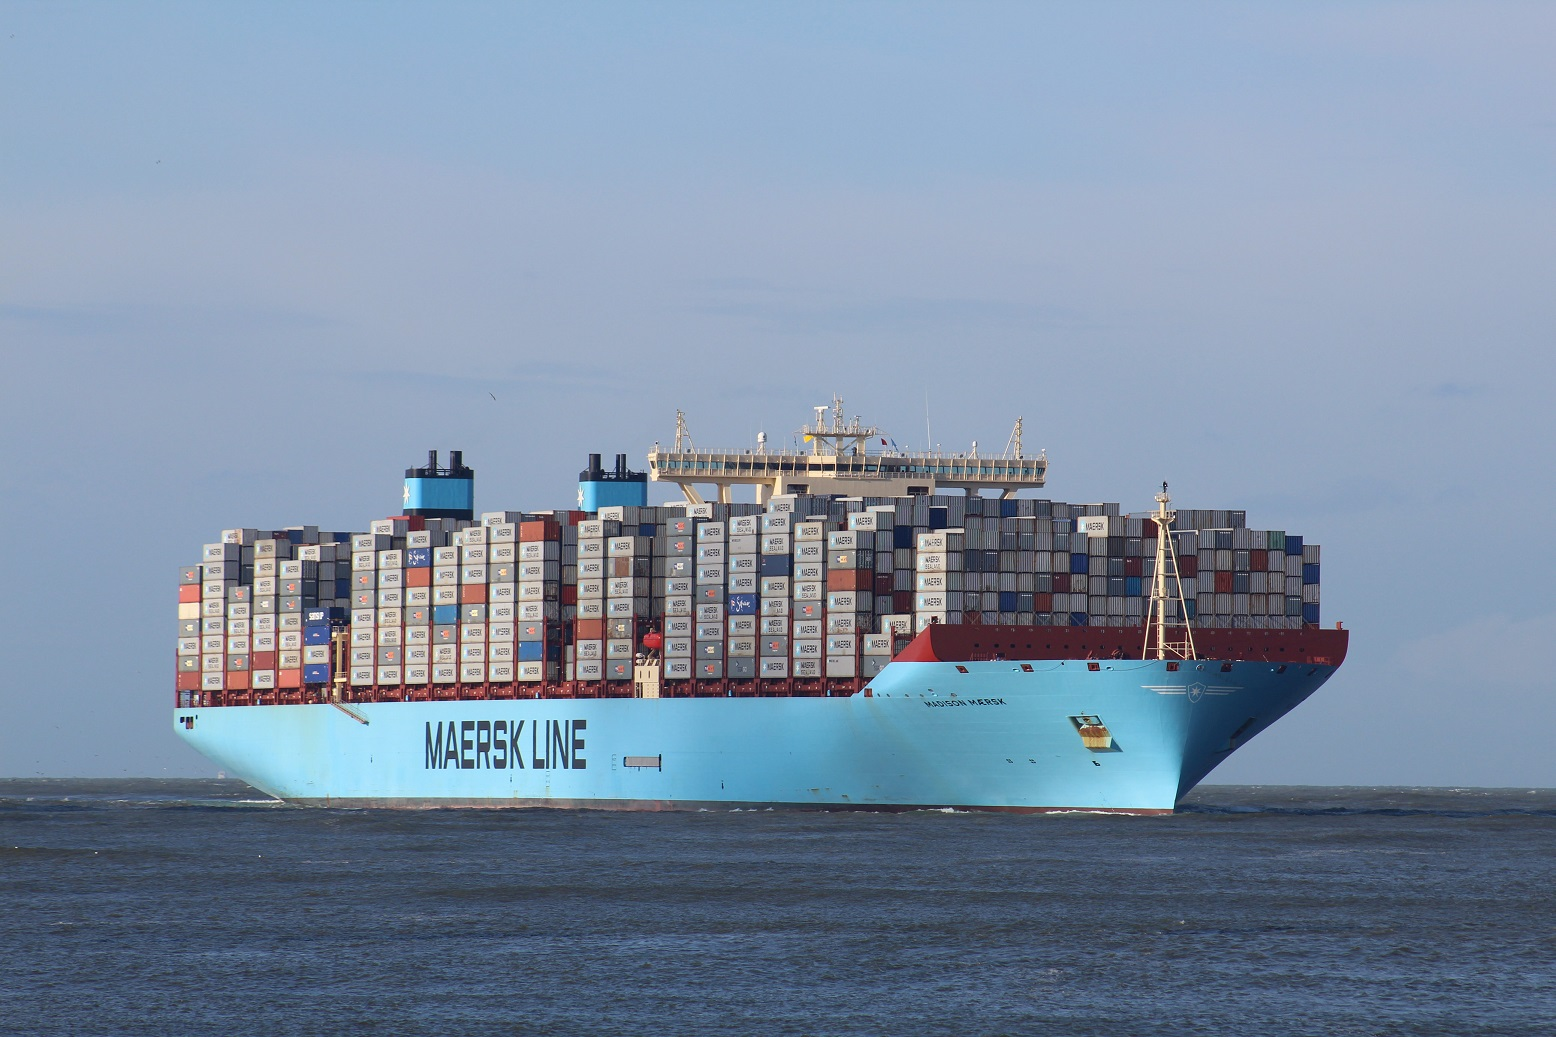 madison_maersk